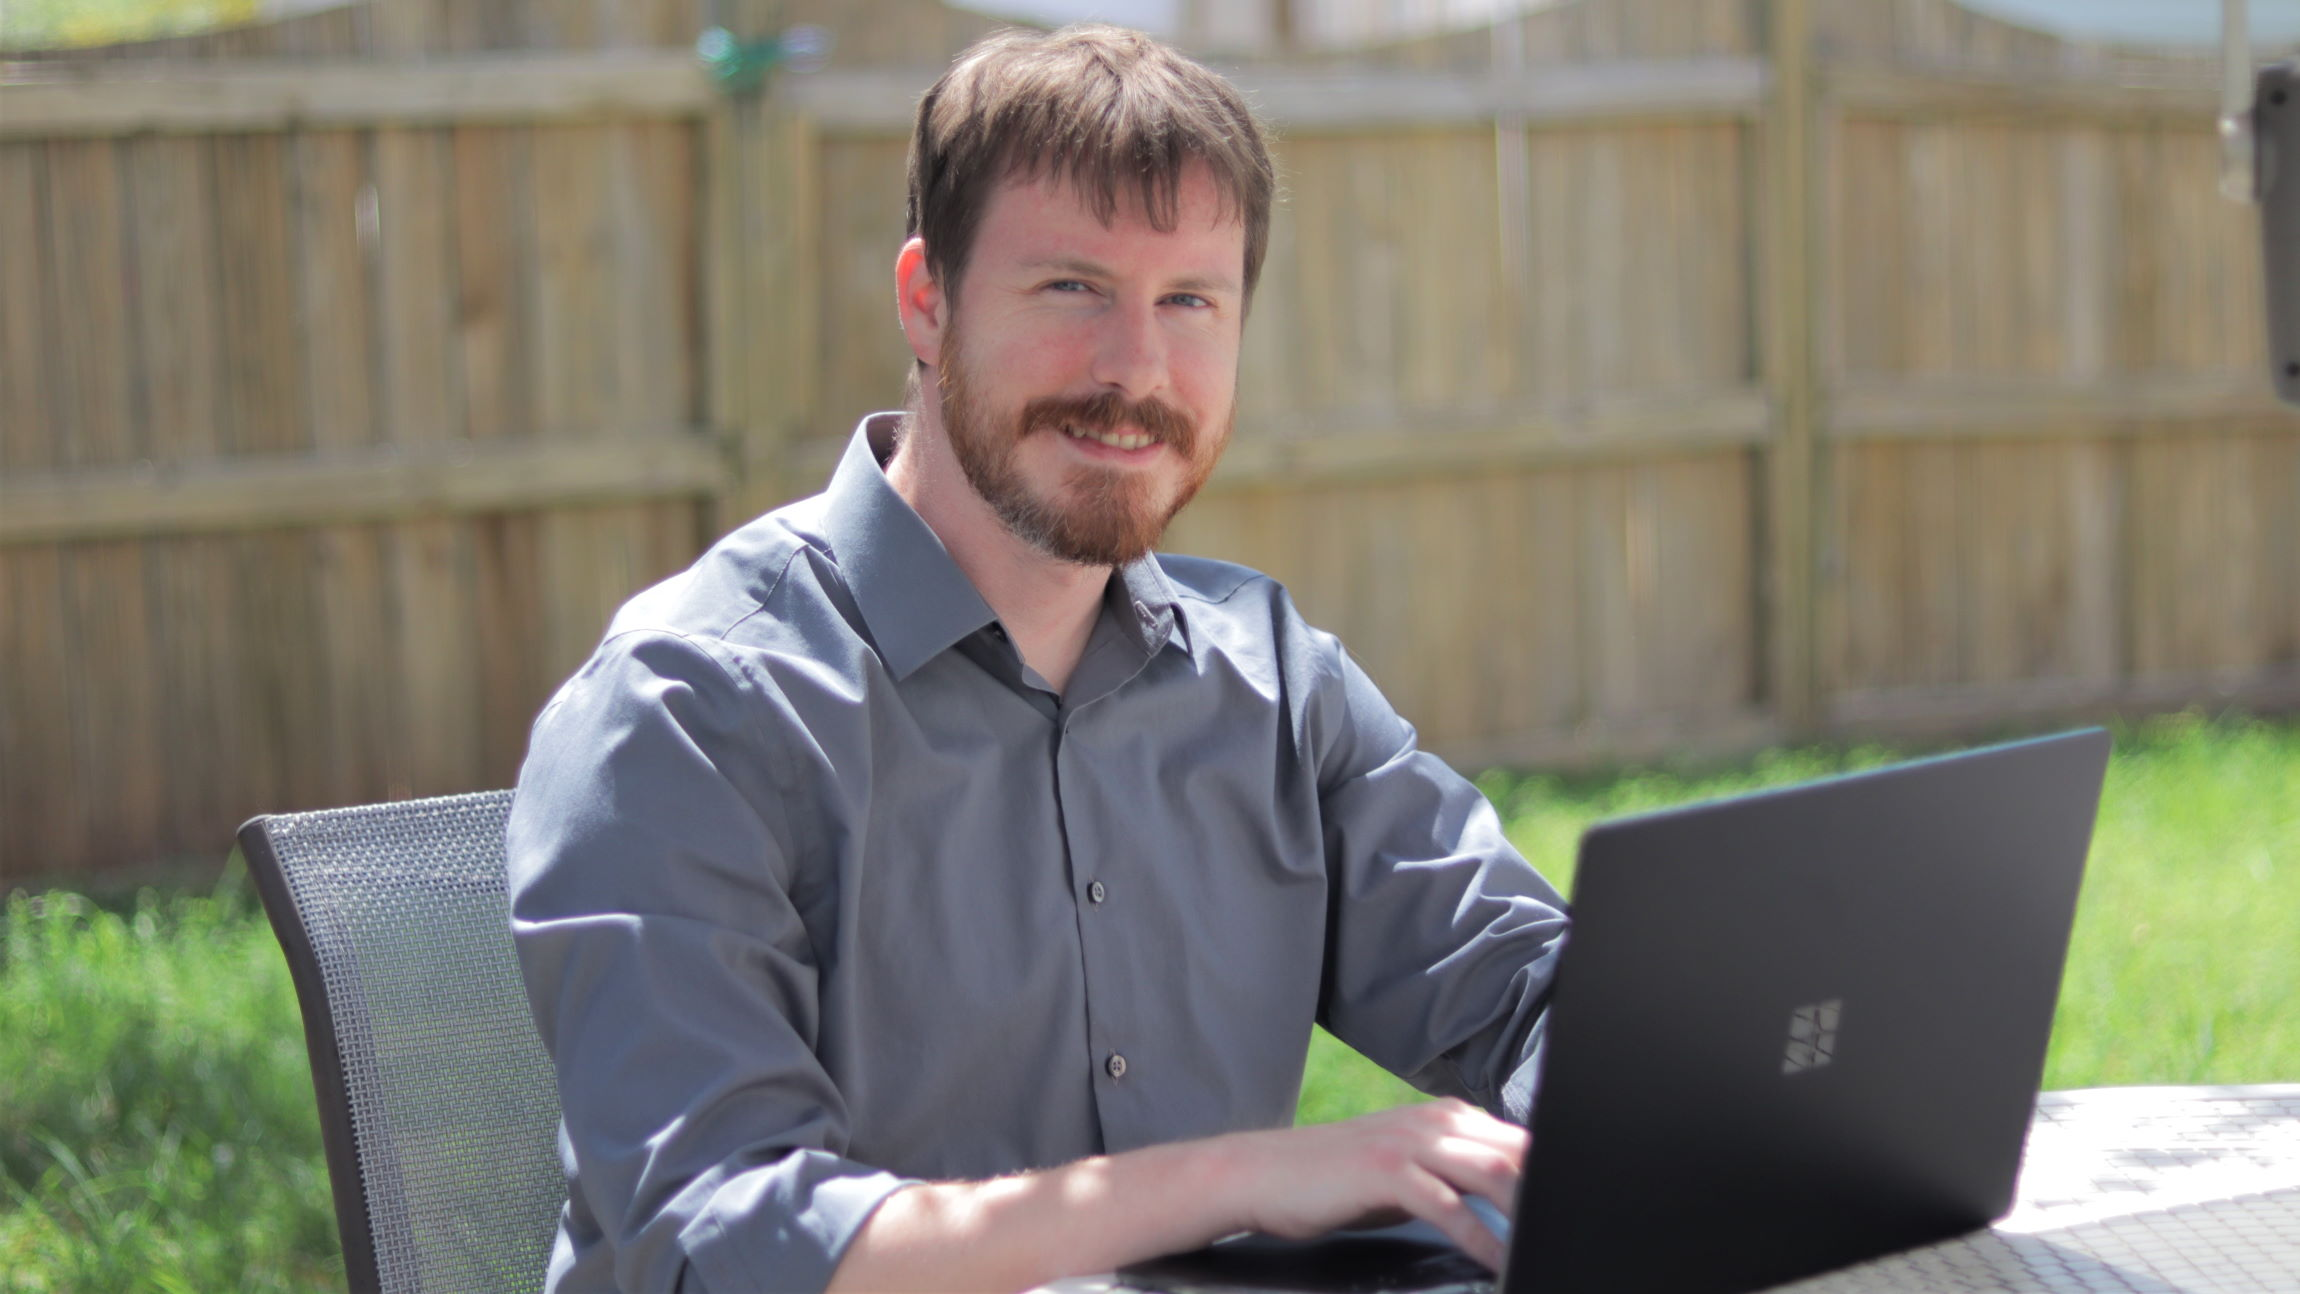 Jon Griffeth sits at his computer in a photo.